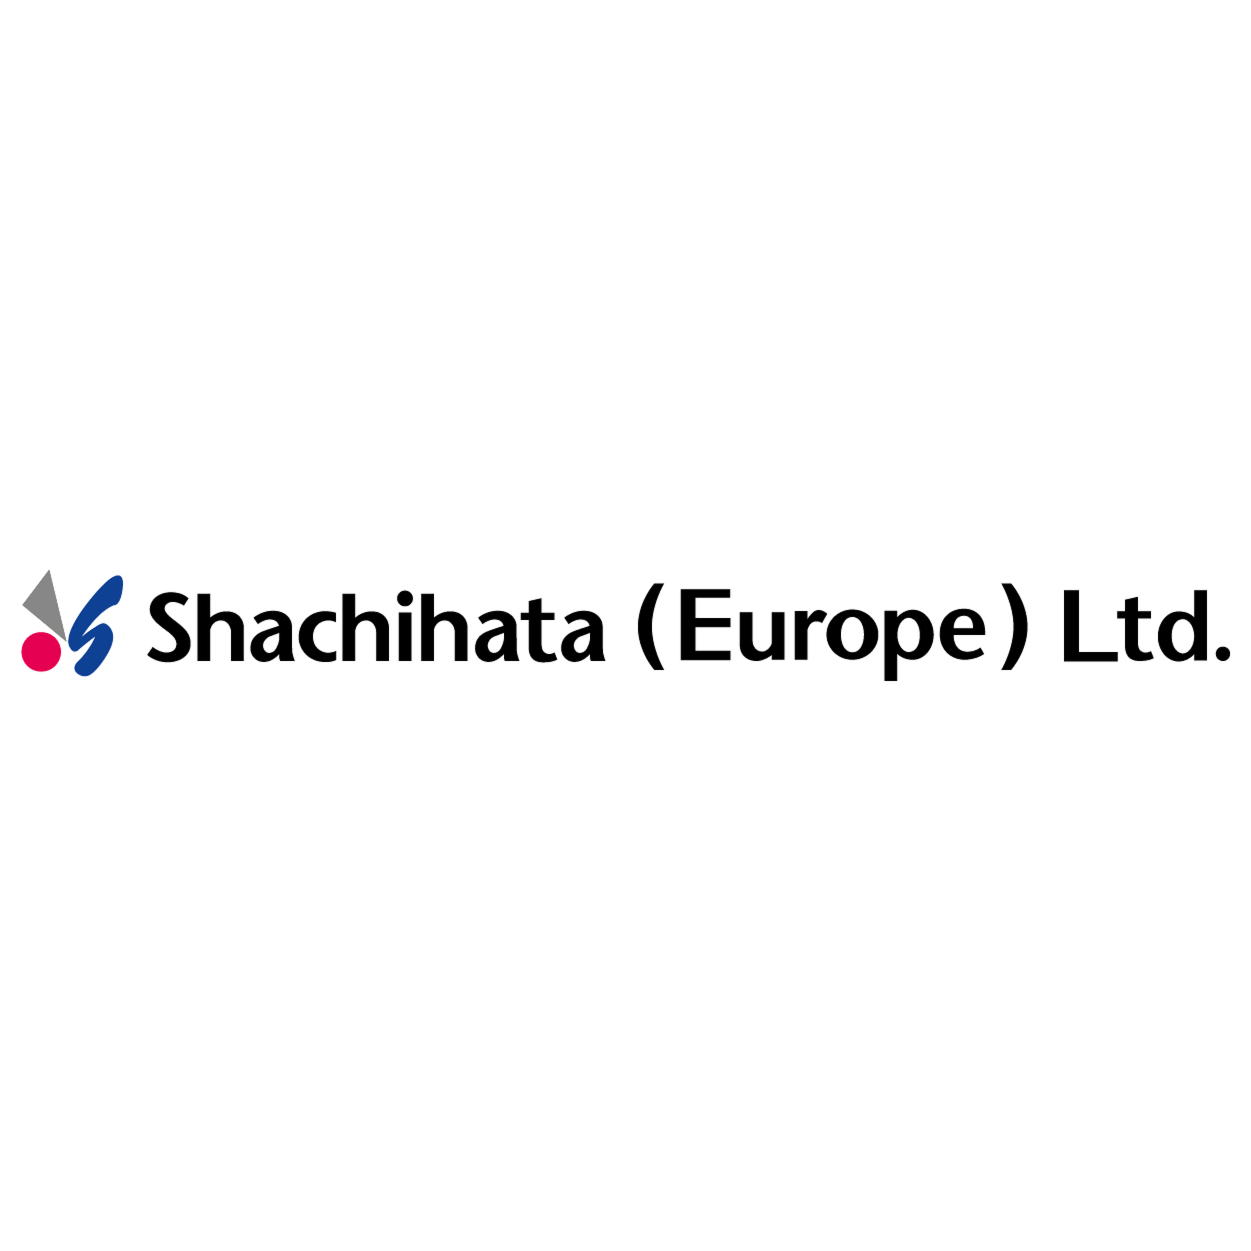 Shachihata (Europe) Ltd